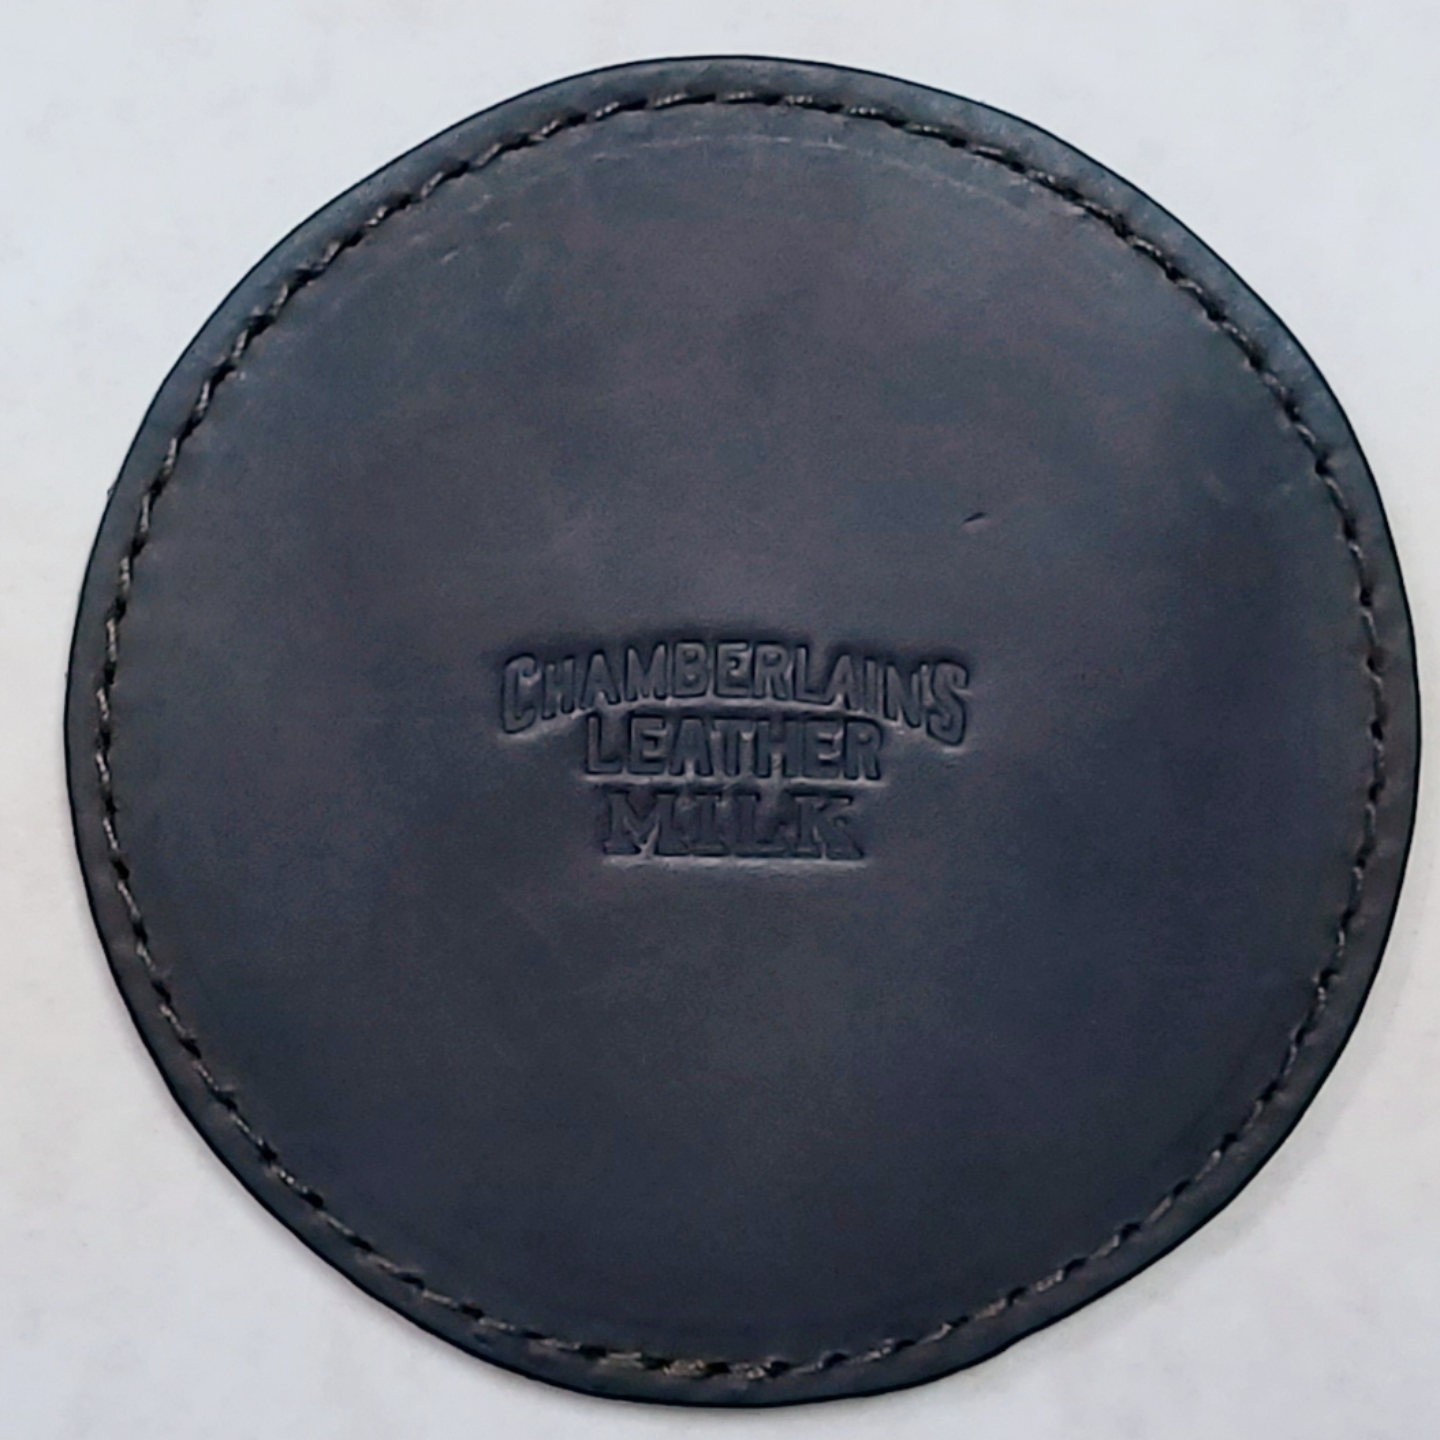 Chamberlains Leather Coasters